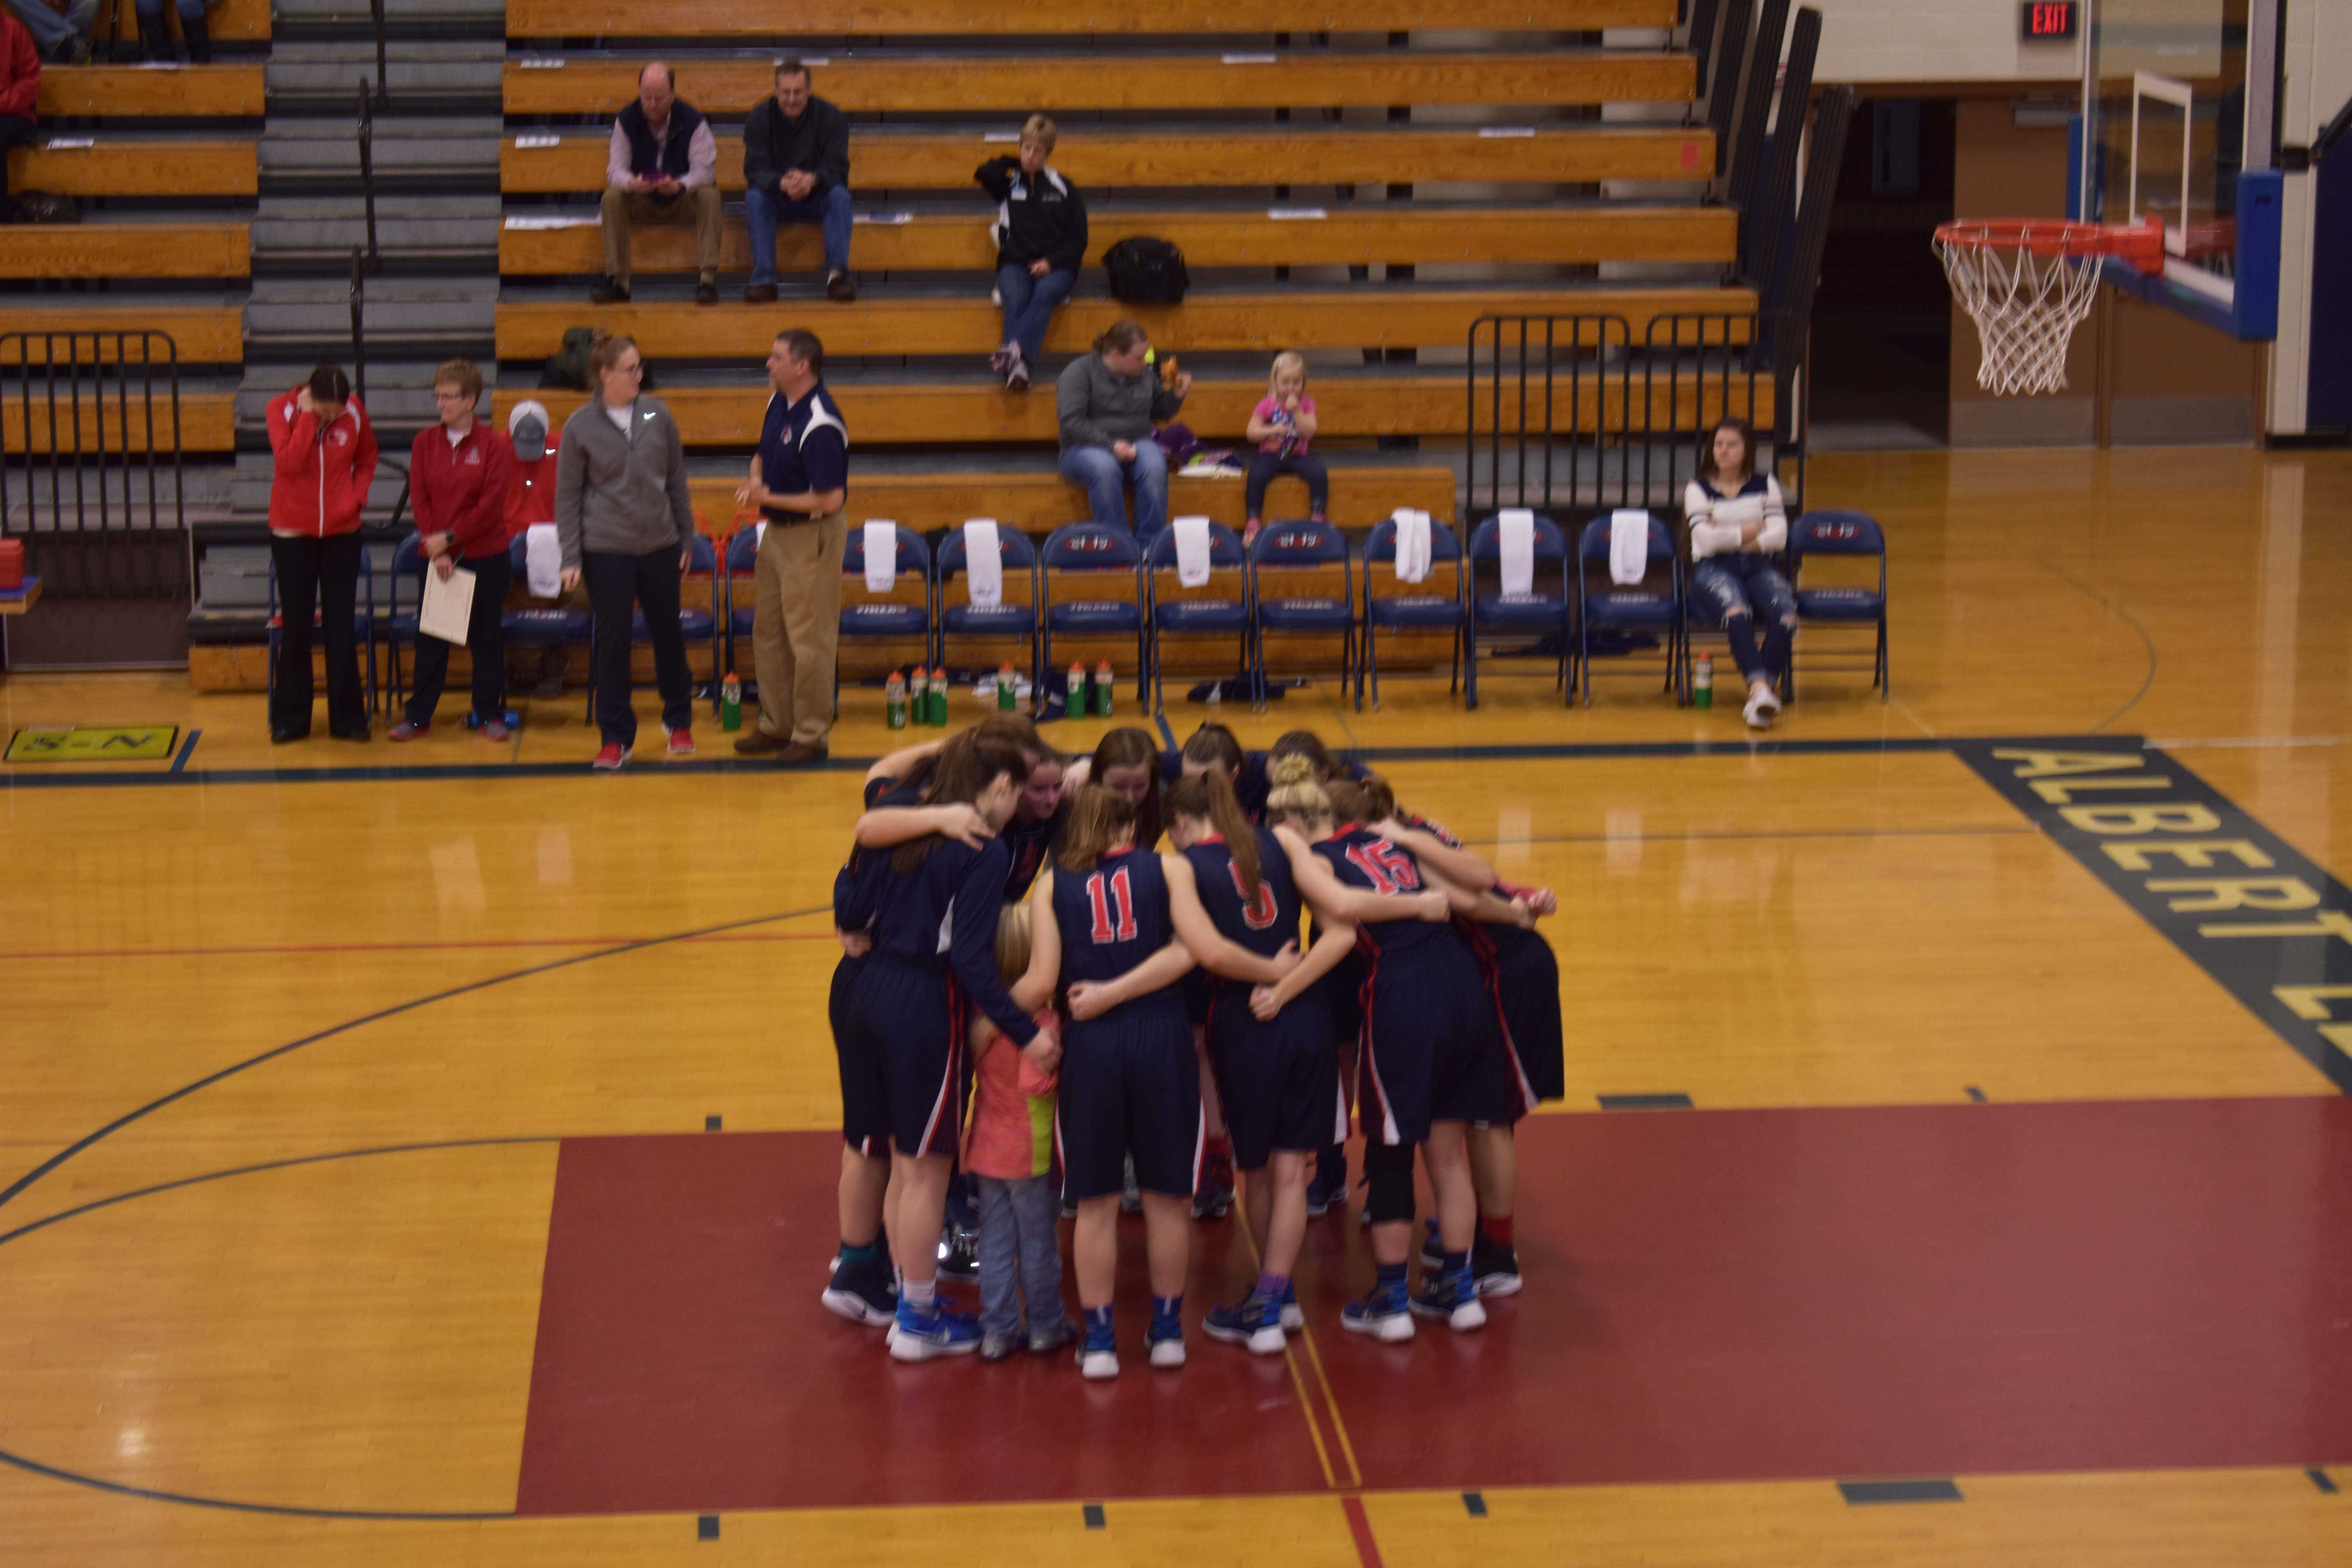 The team huddles to discuss plans and encourages one another before the game. The girls played Mankato East on Feb 11th